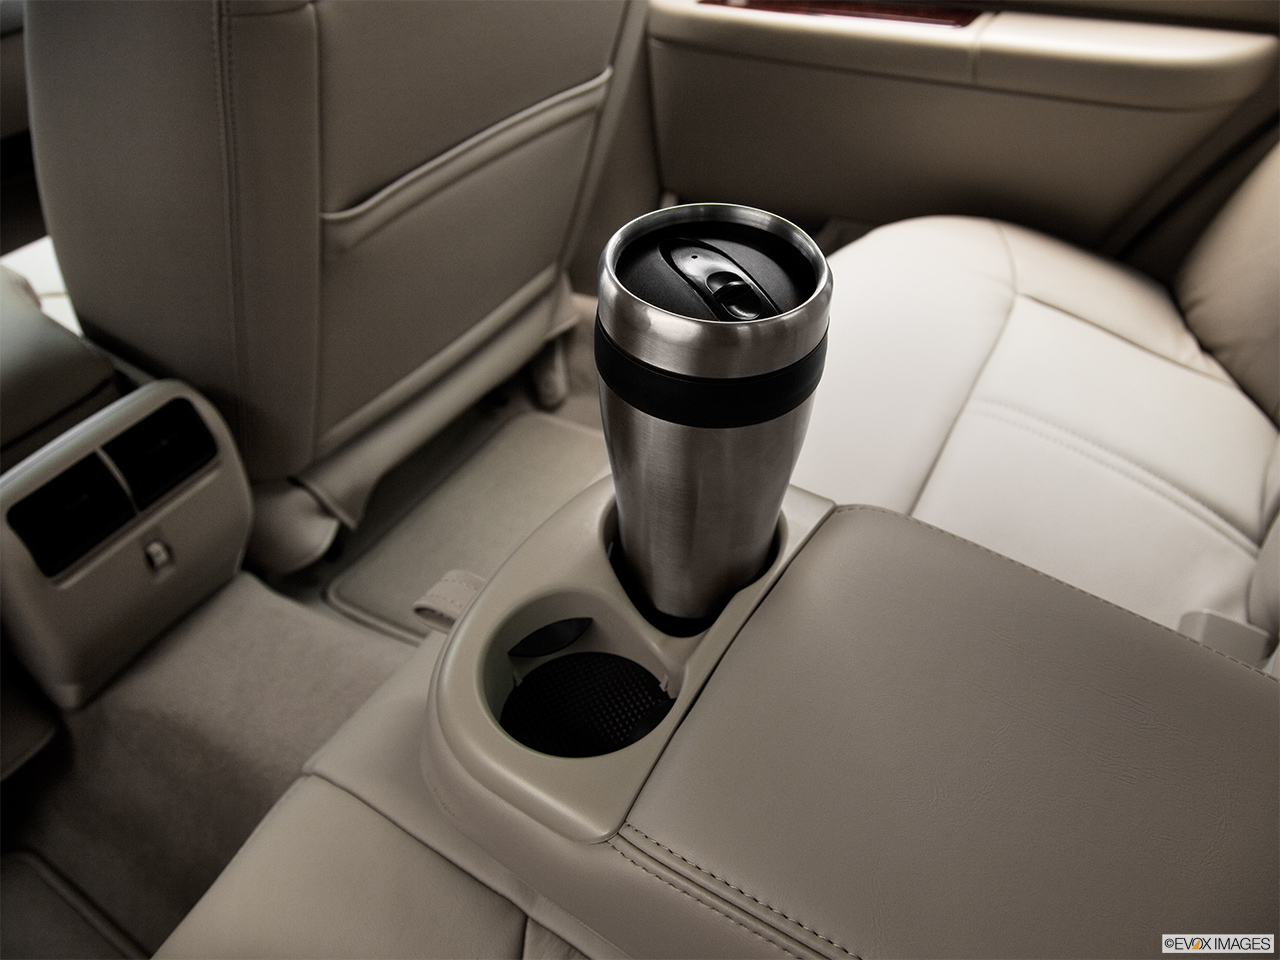 2011 Lincoln Town Car Signature Limited Cup holder prop (quaternary).